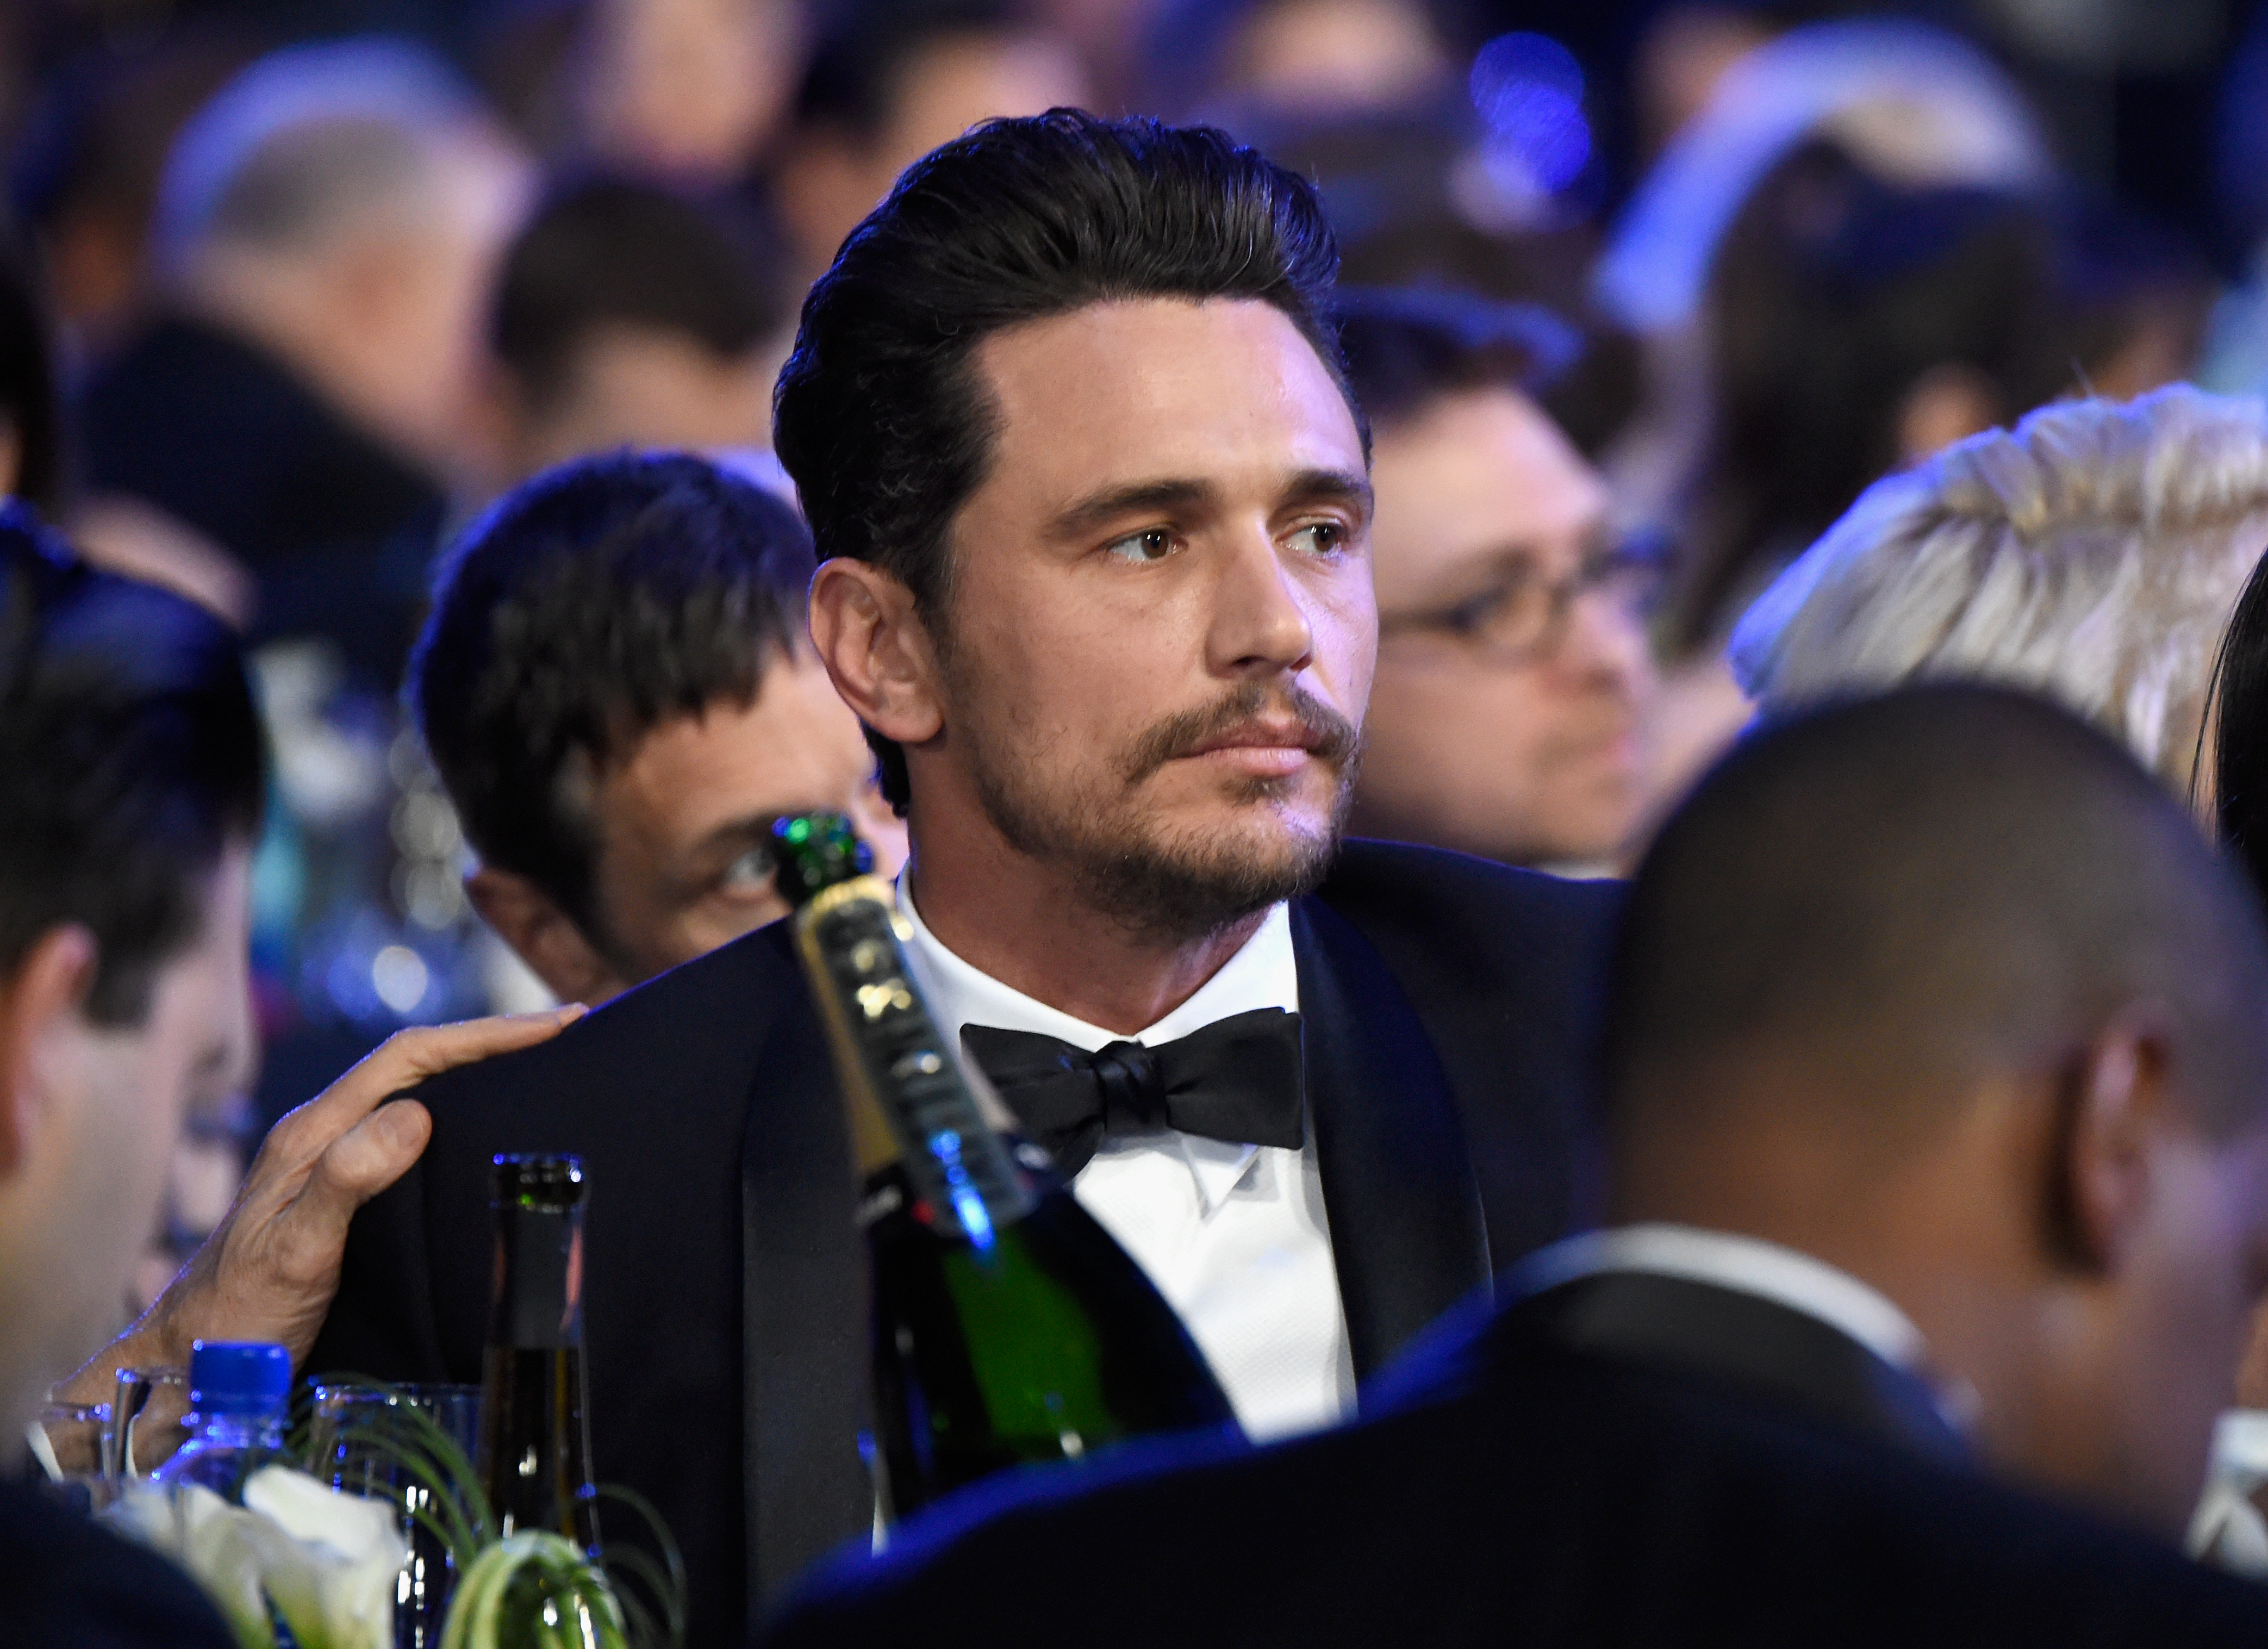 Actor James Franco attends the 24th Annual Screen Actors Guild Awards at The Shrine Auditorium on January 21, 2018 in Los Angeles.